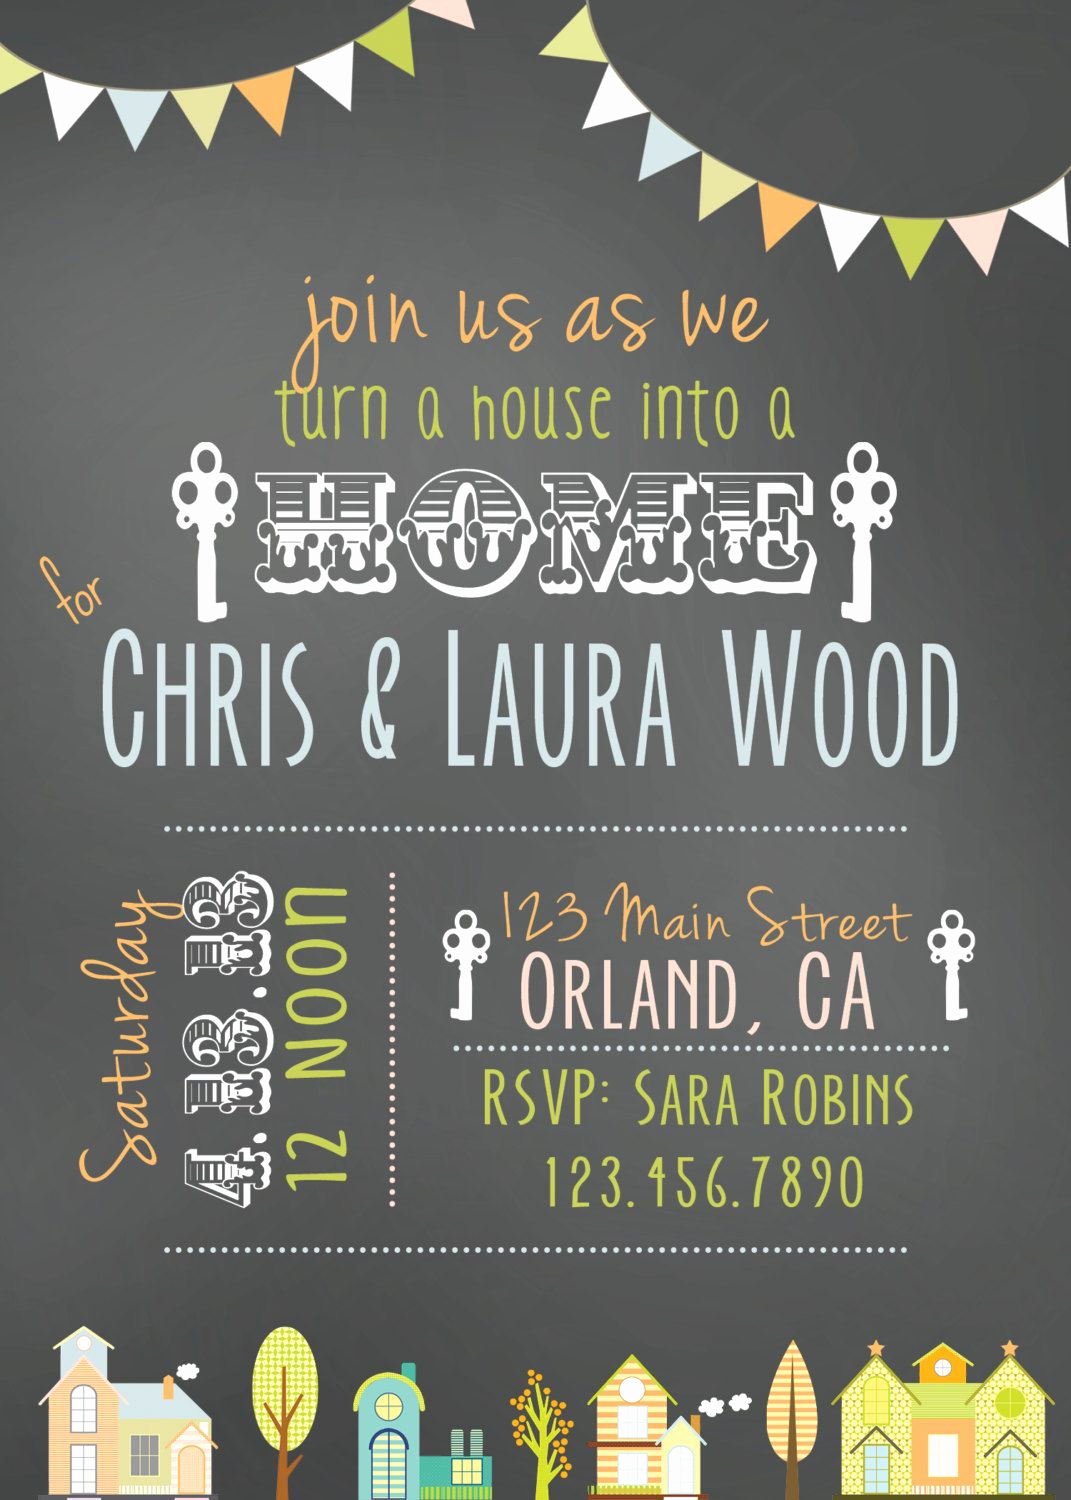 Housewarming Party Invitation Message Best Of House Warming Party Invitation $12 00 Via Etsy Repinned